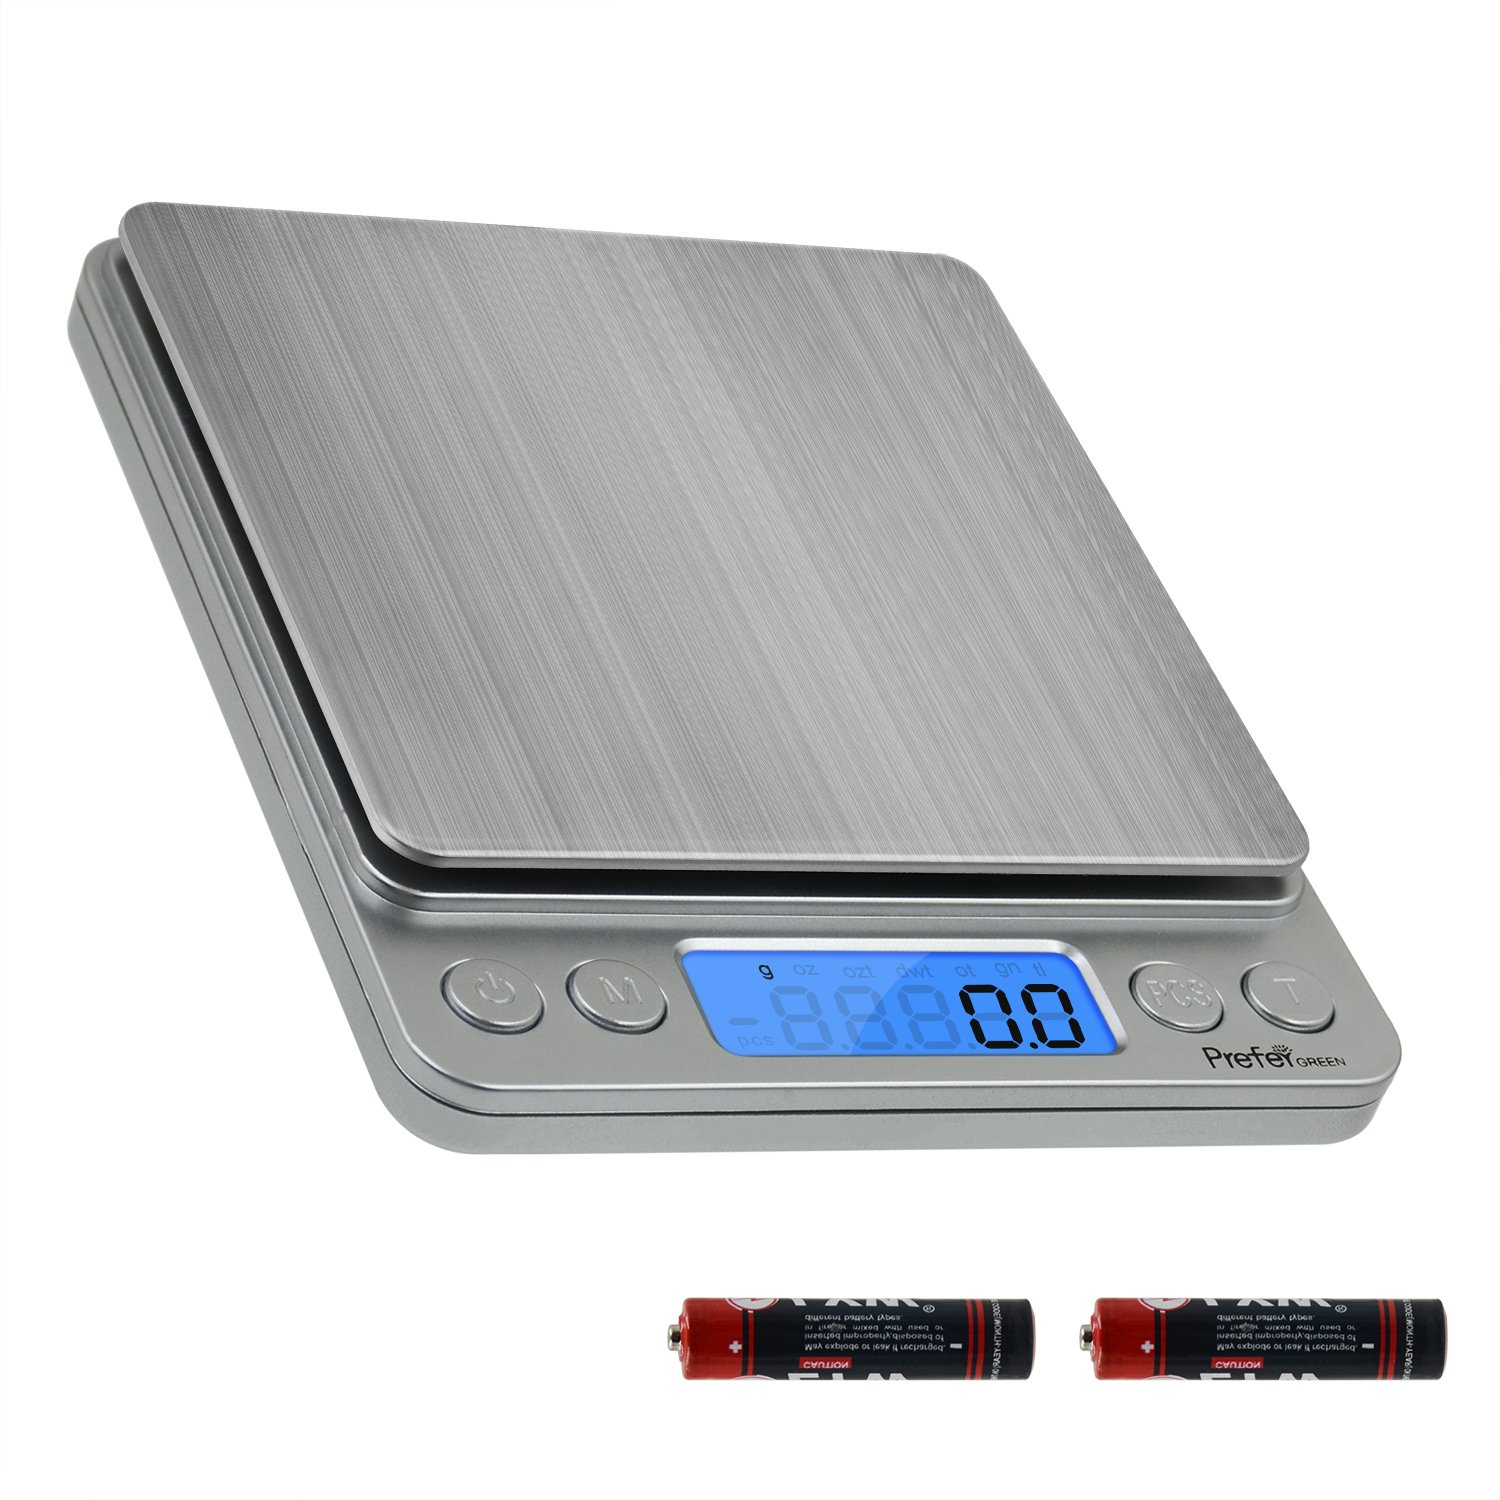 Prefer green digital kitchen scale 3000g 0 01oz 0 1g pocket cooking scale mini food scalejewelry scale stainless steel batteries included 3000g 0 1g